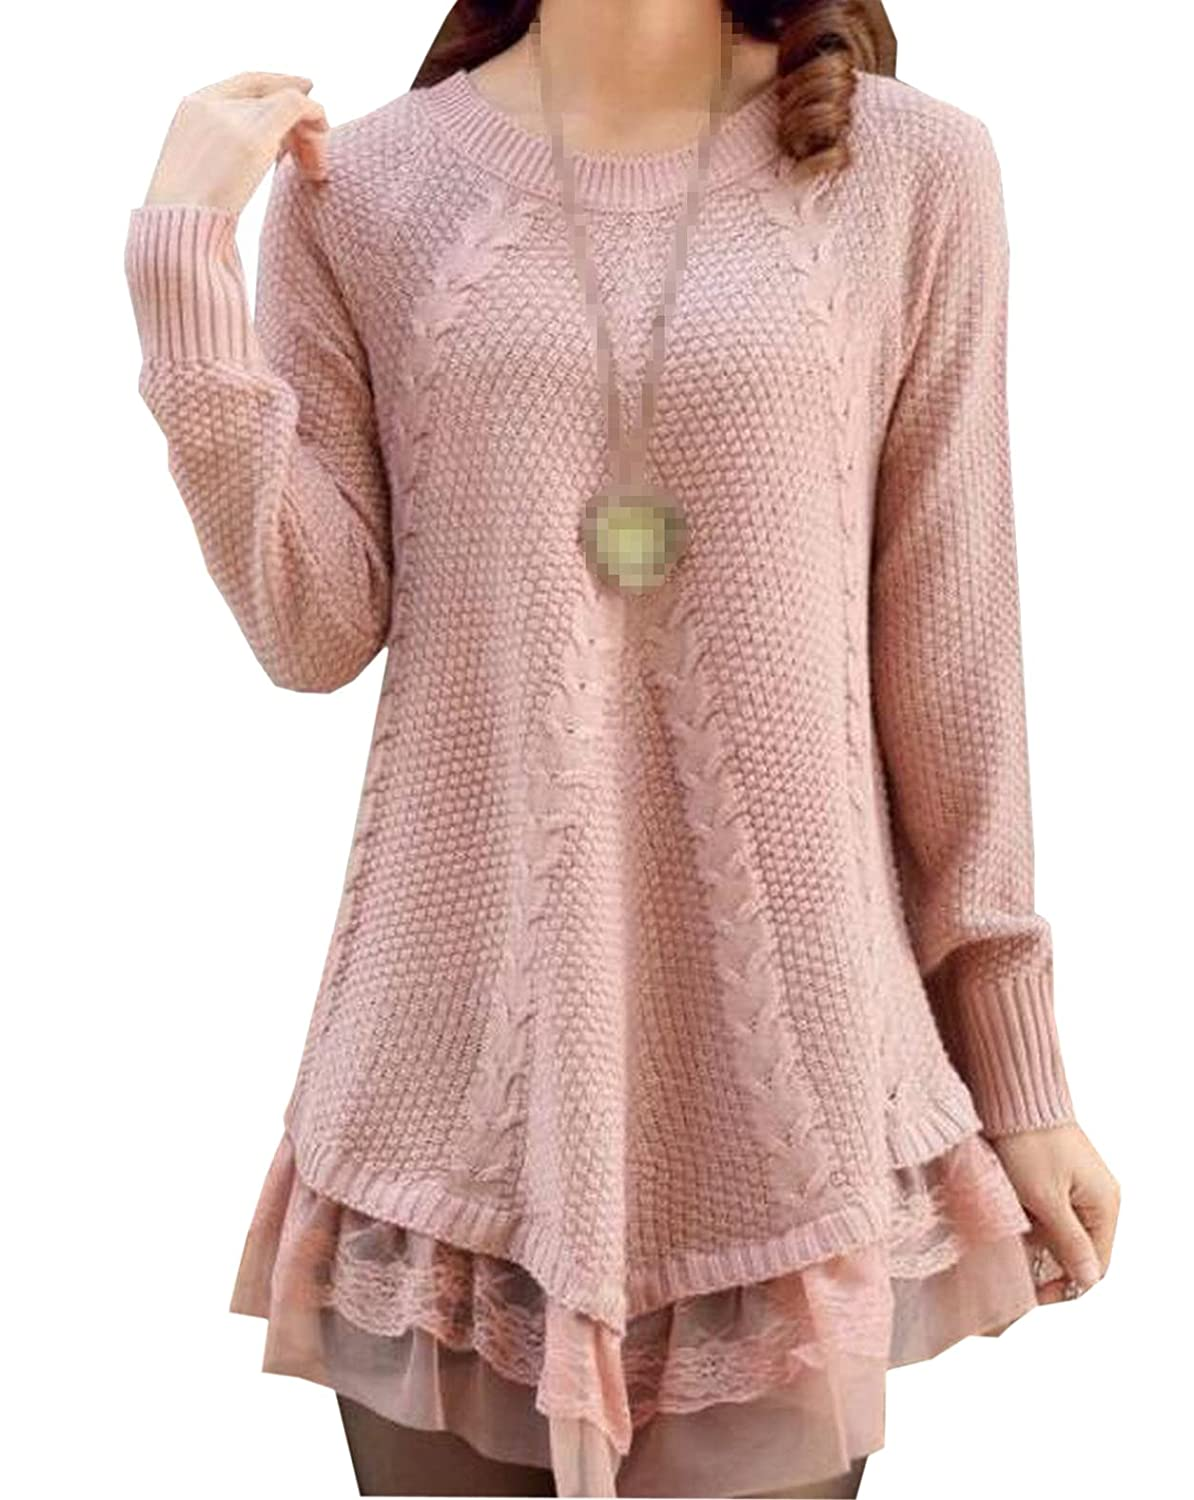 Ovetour Women Lace Loose Knit Sweater Long Sleeves Slim Pullover Beige)